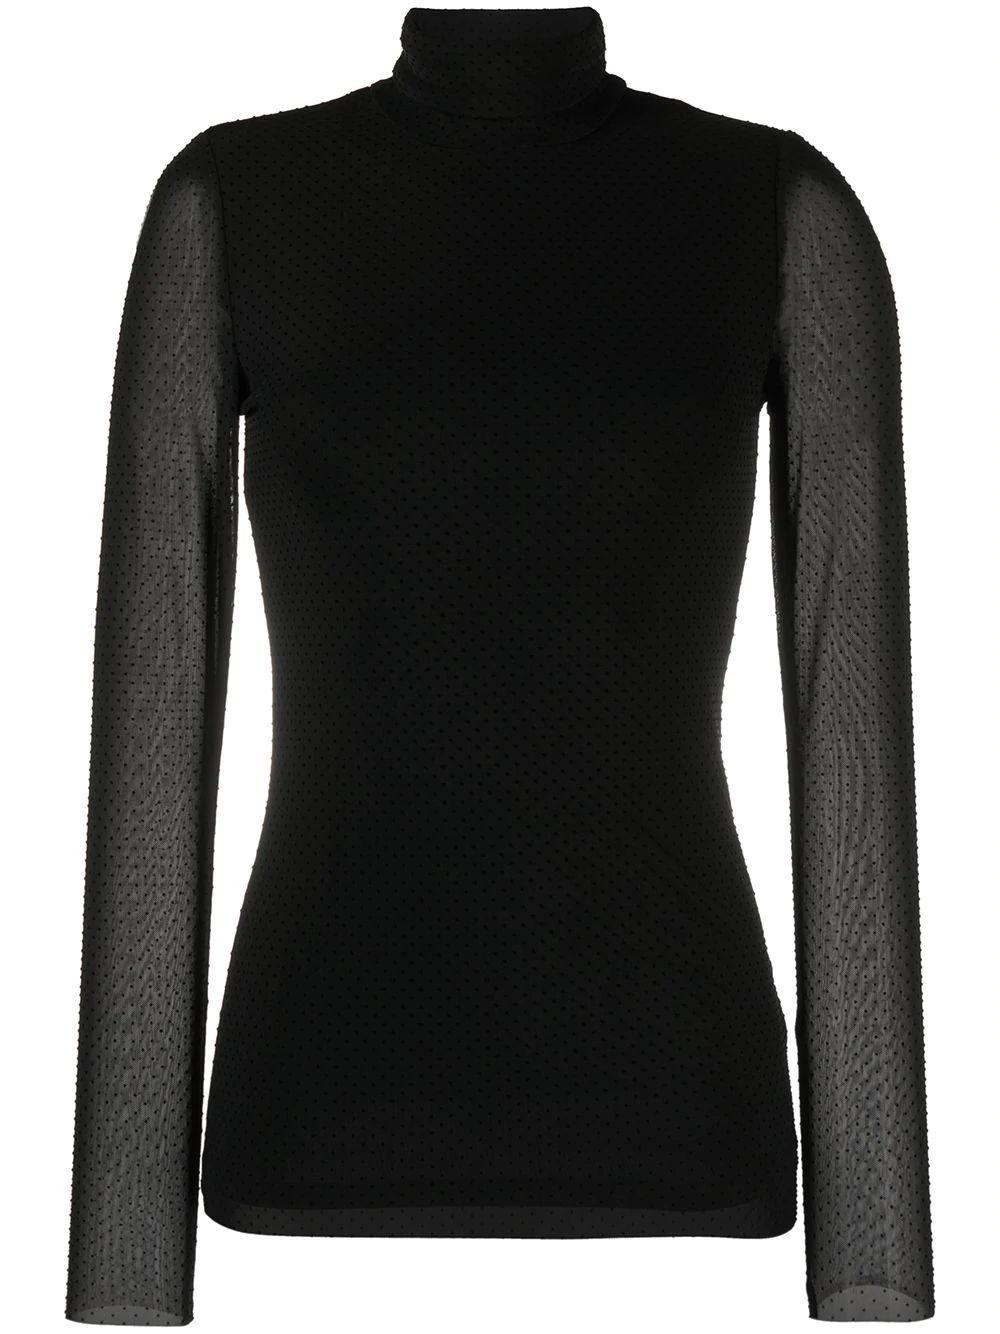 Dotted Mesh Turtleneck